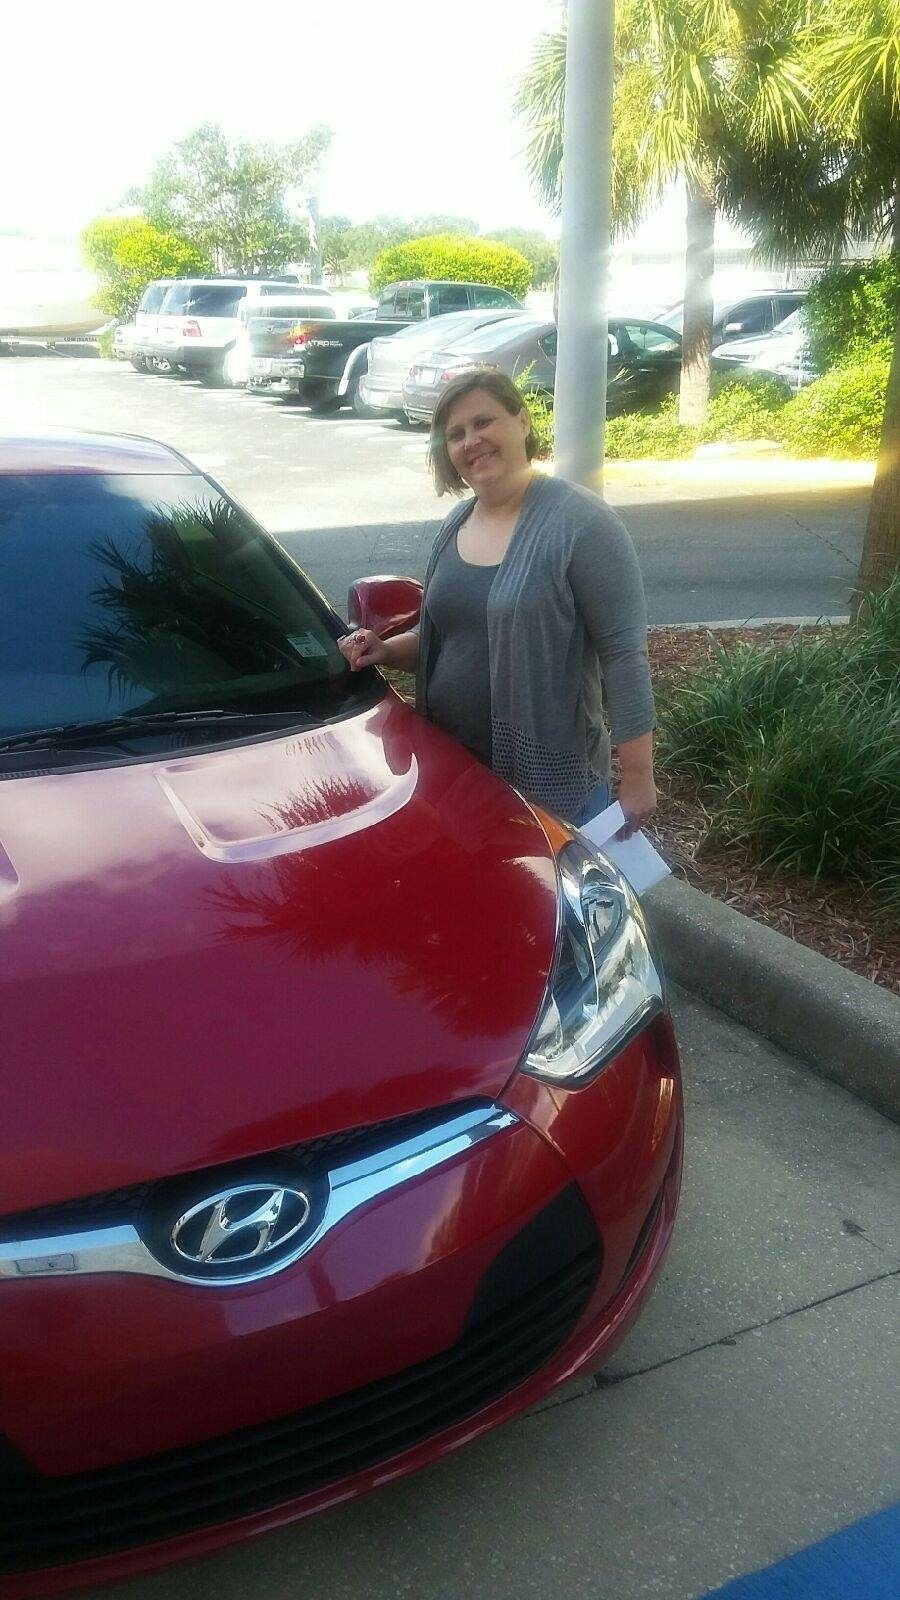 coming mrs waltz l working lakeland mo gafur to big pin your hyundai you thanks appreciate we donna for and with business thank